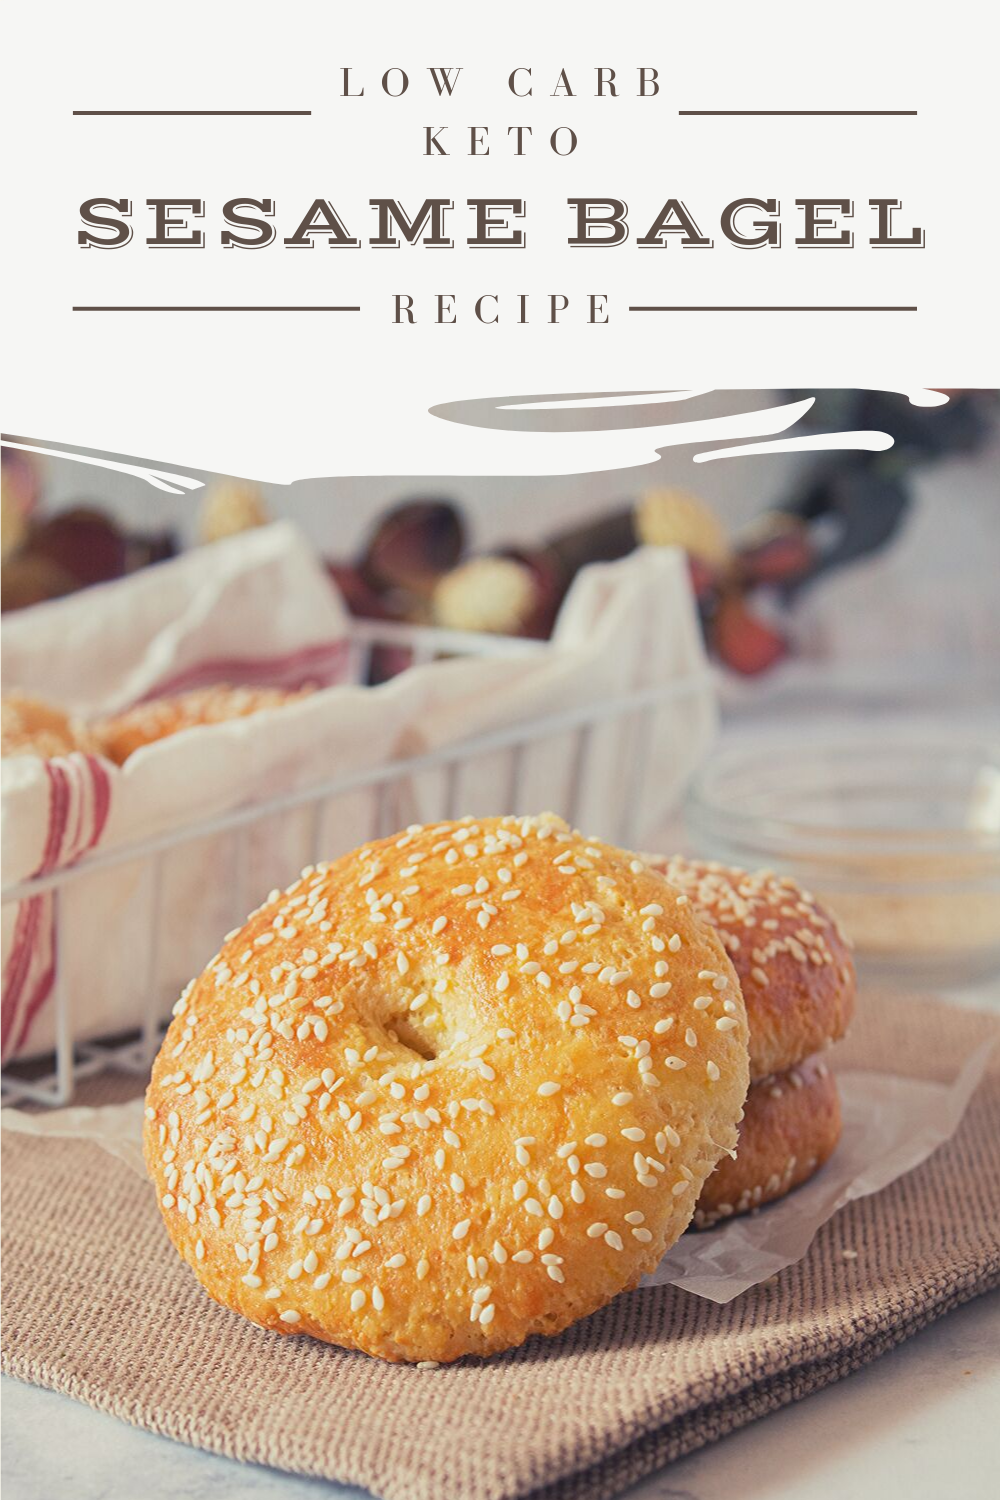 Our low carb Keto Sesame bagel recipe is super easy to make and takes only 5 ingredients.  This fathead style dough skips the coconut flour and uses almond flour instead.  We also skip the yeast and use baking powder instead.  The result is a delicious, chewy and dense Keto bagel that rivals anything you would get in New York City. #ketobagel #ketorecipe #ketobreakfast #ketobaking #ketodiet